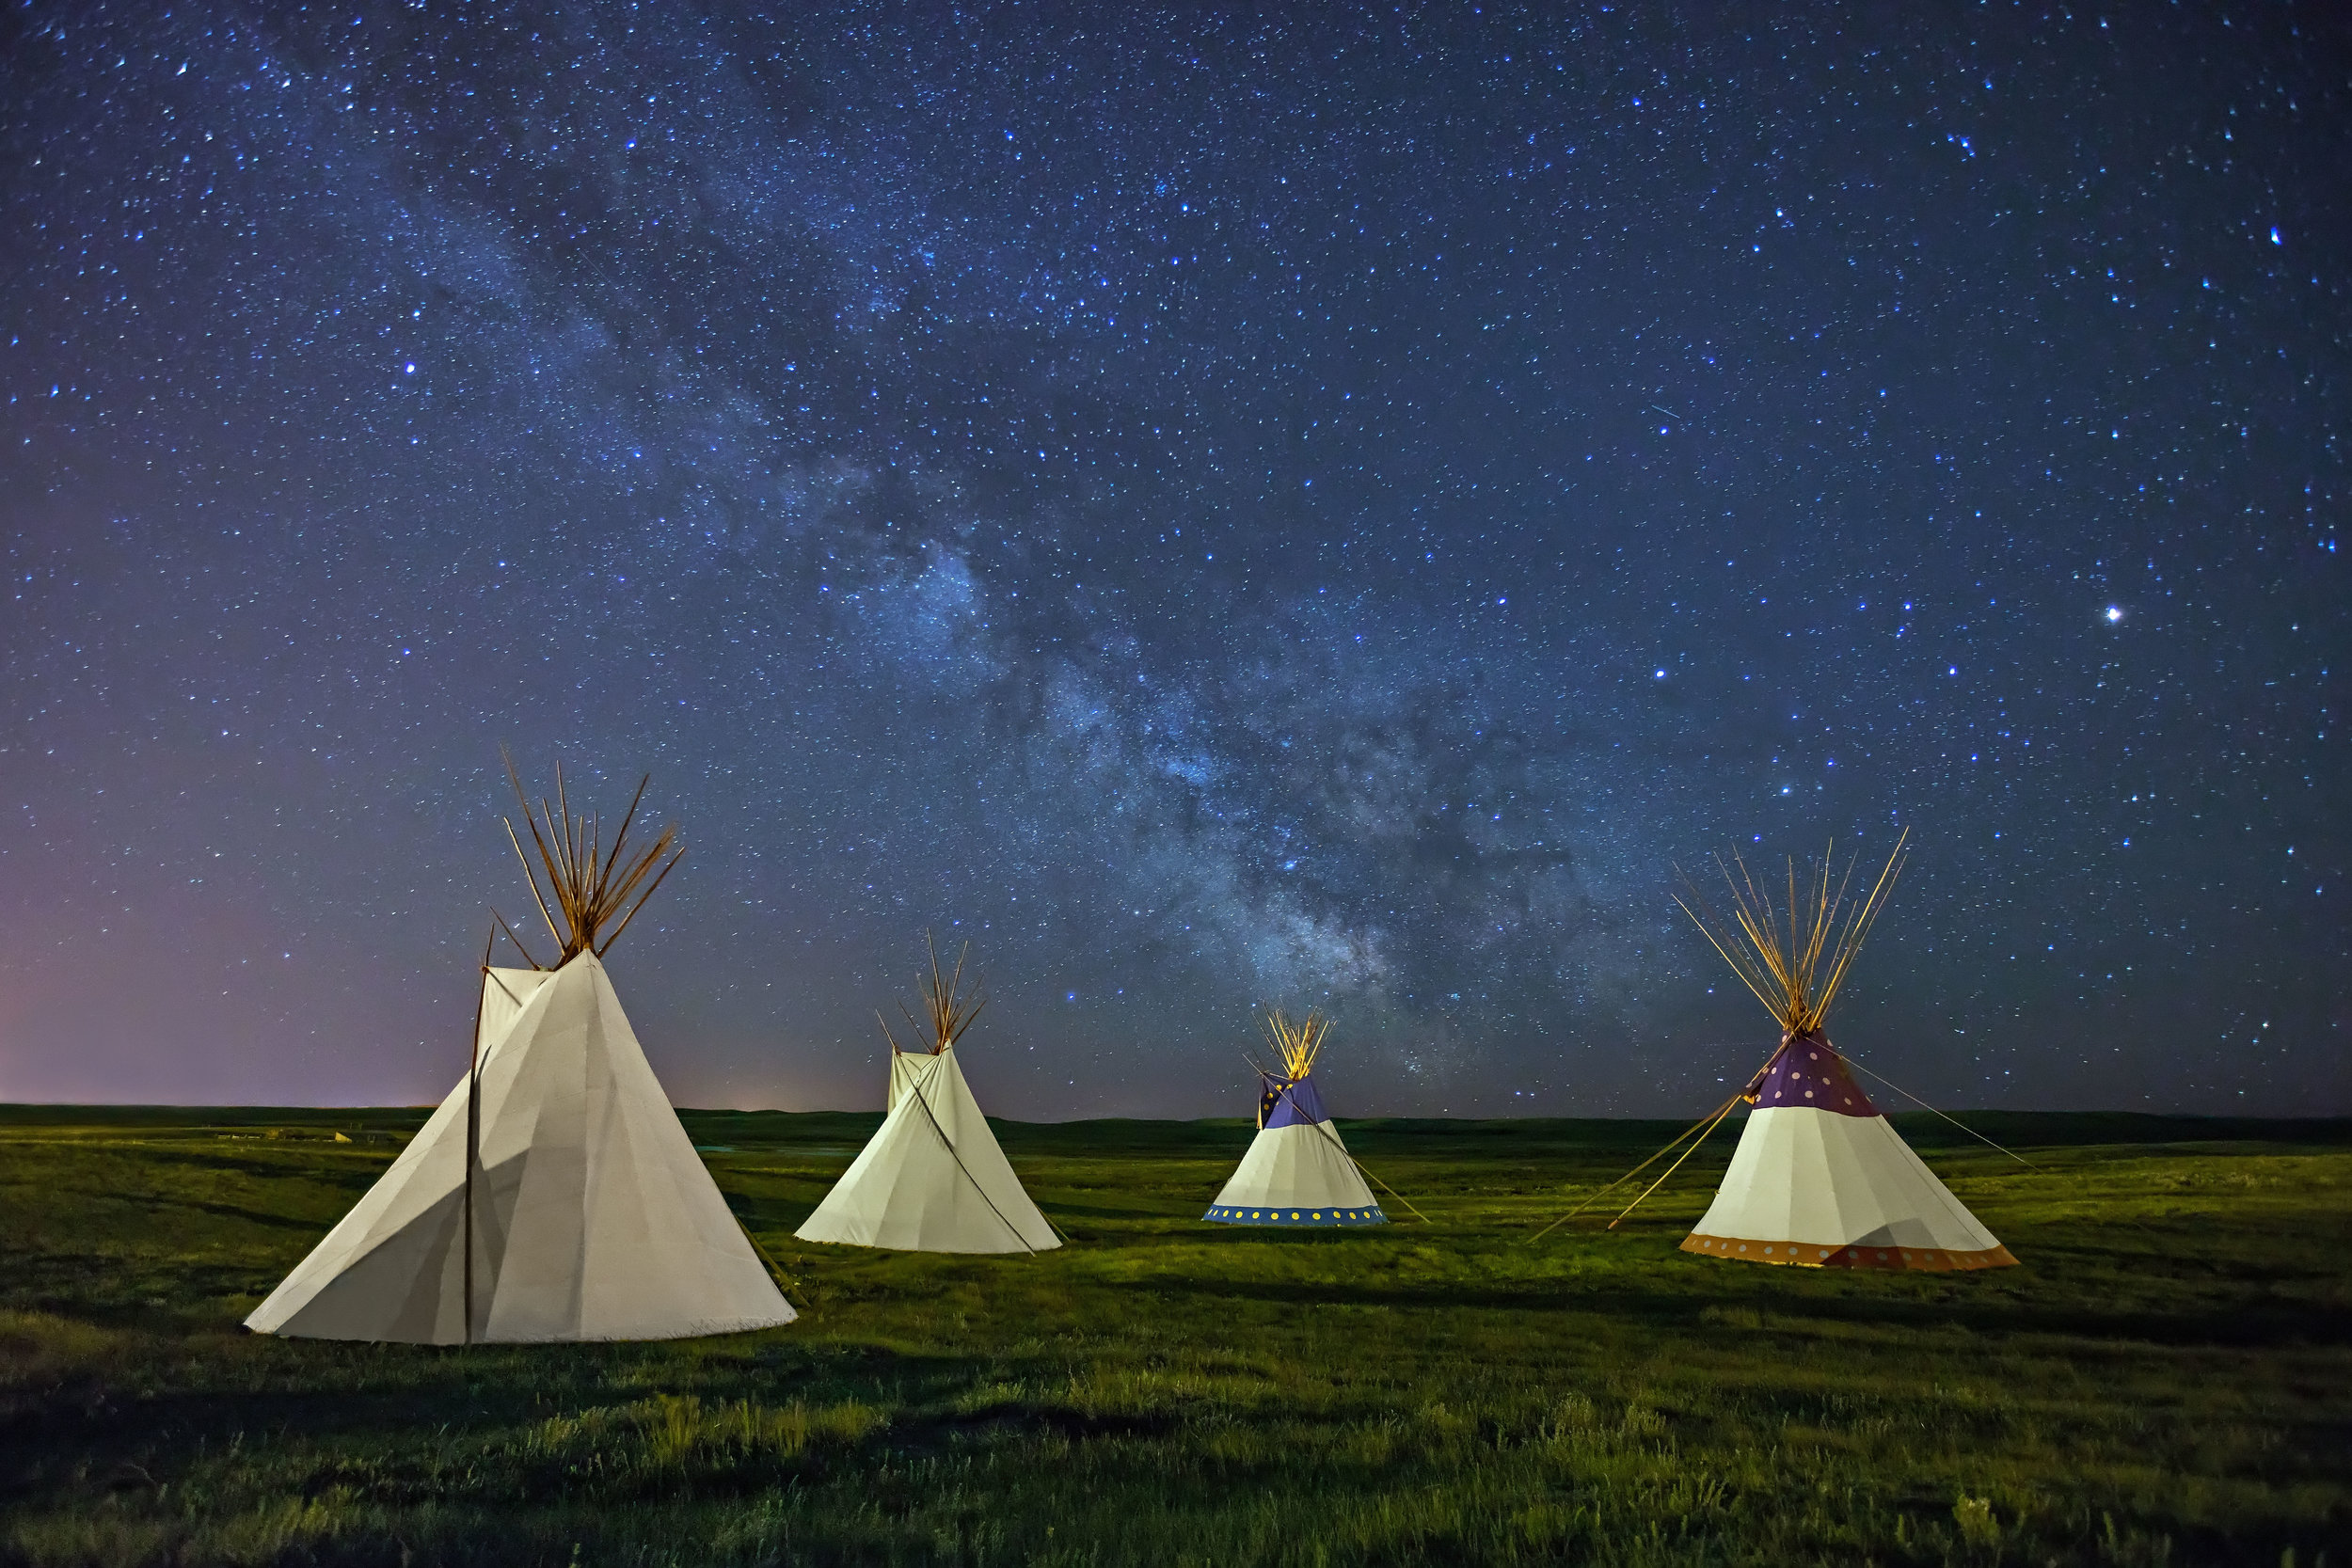 Milky Way over Blackfeet Indian Reservation Tipis in Montana